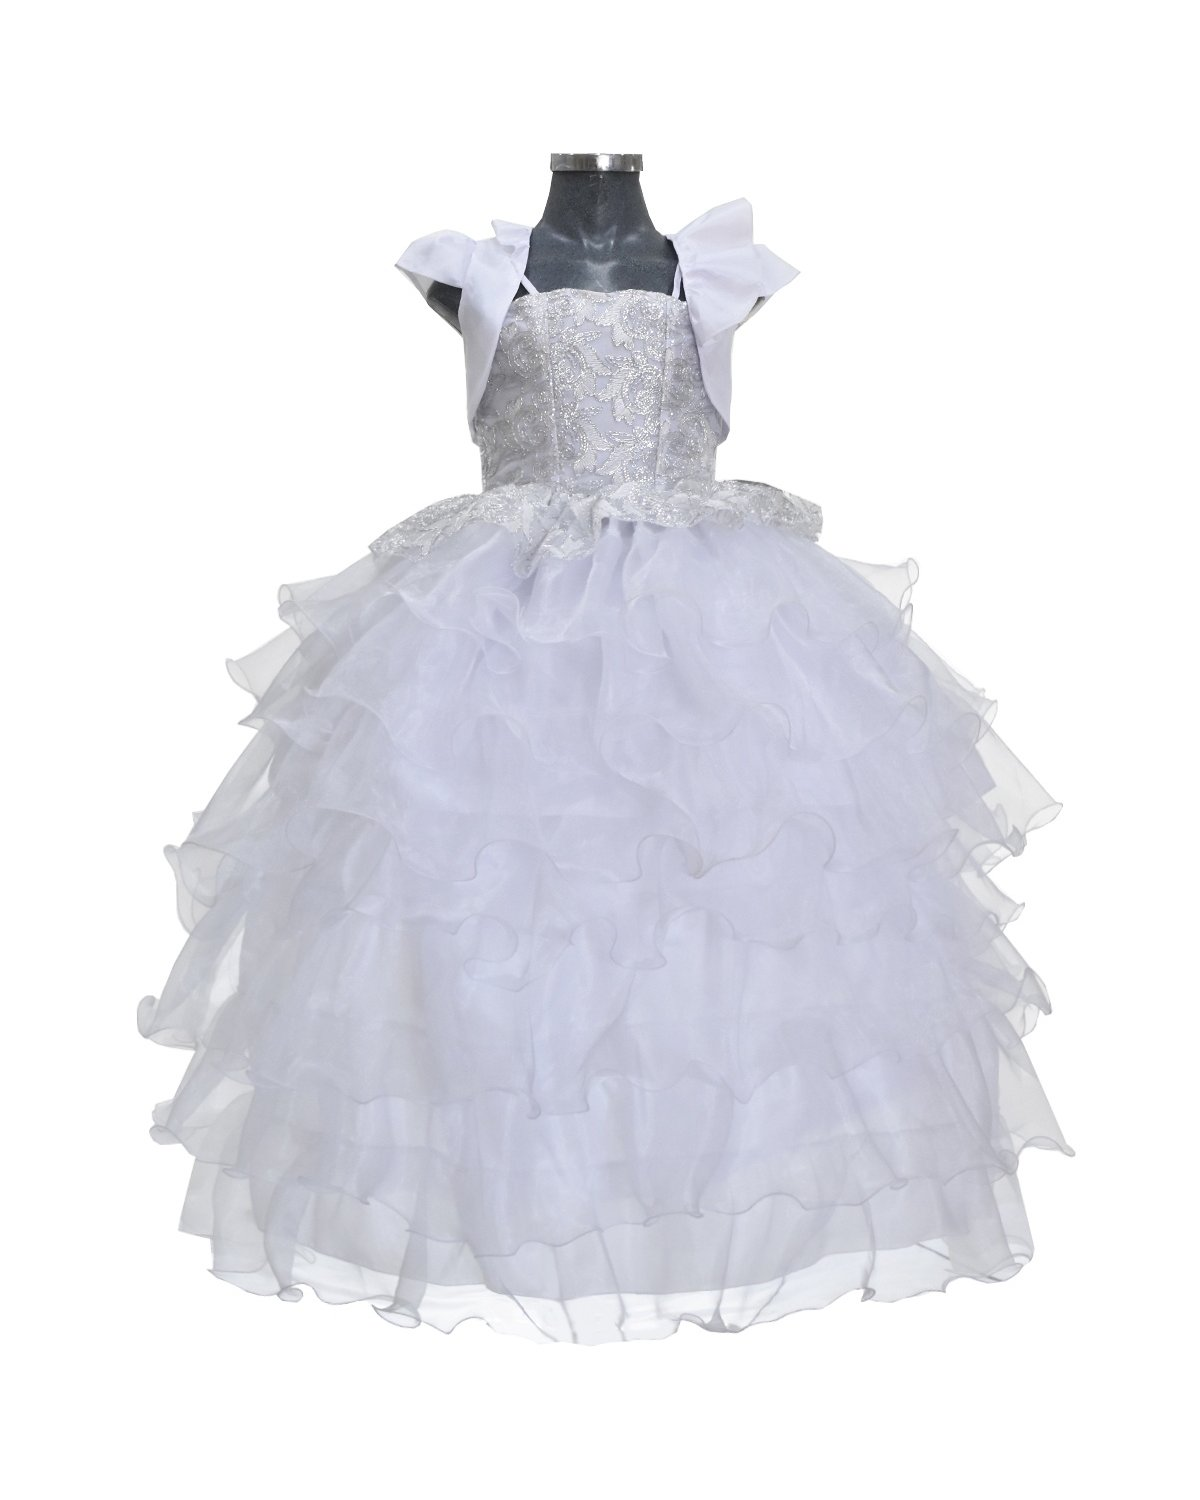 ANNY MODEL FIRST COMMUNION DRESS